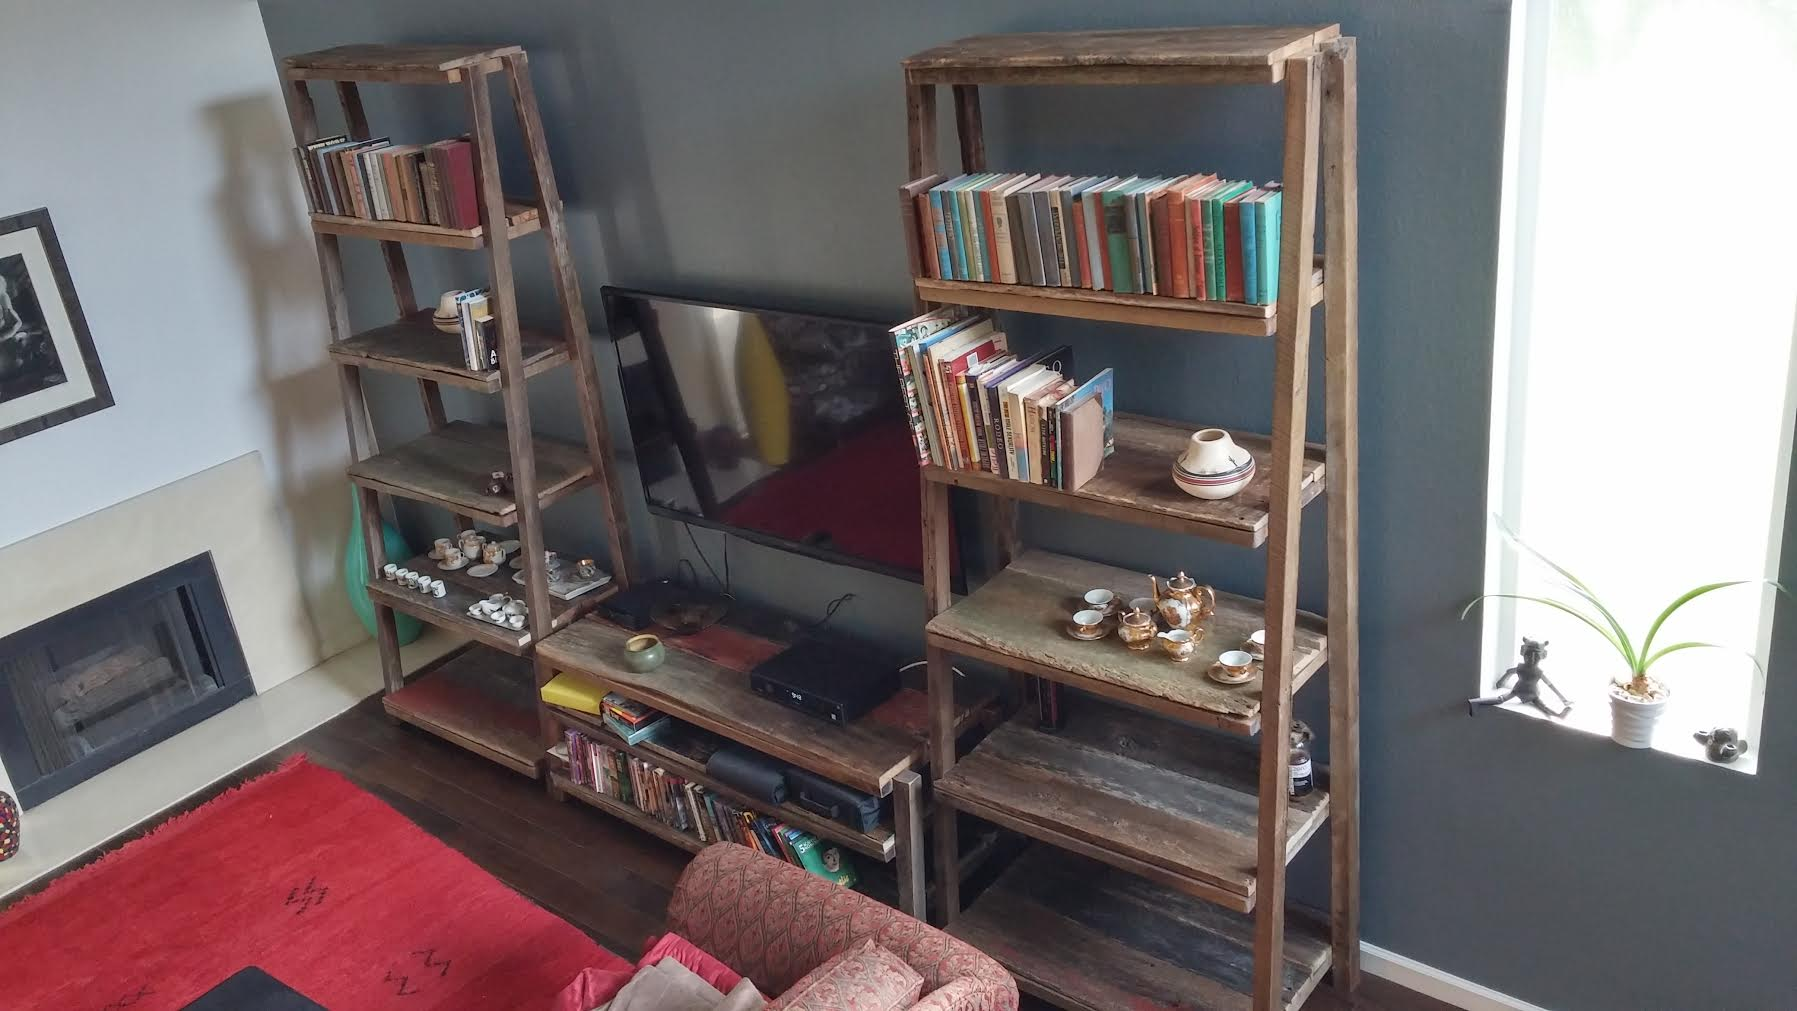 With a little over 200sqft in reclaimed wood material, this DIY customer made a one of kind living room shelving unit/ book case/television entertainment center. They did a great job at showcasing the design possibilities ofour reclaimed lumber!